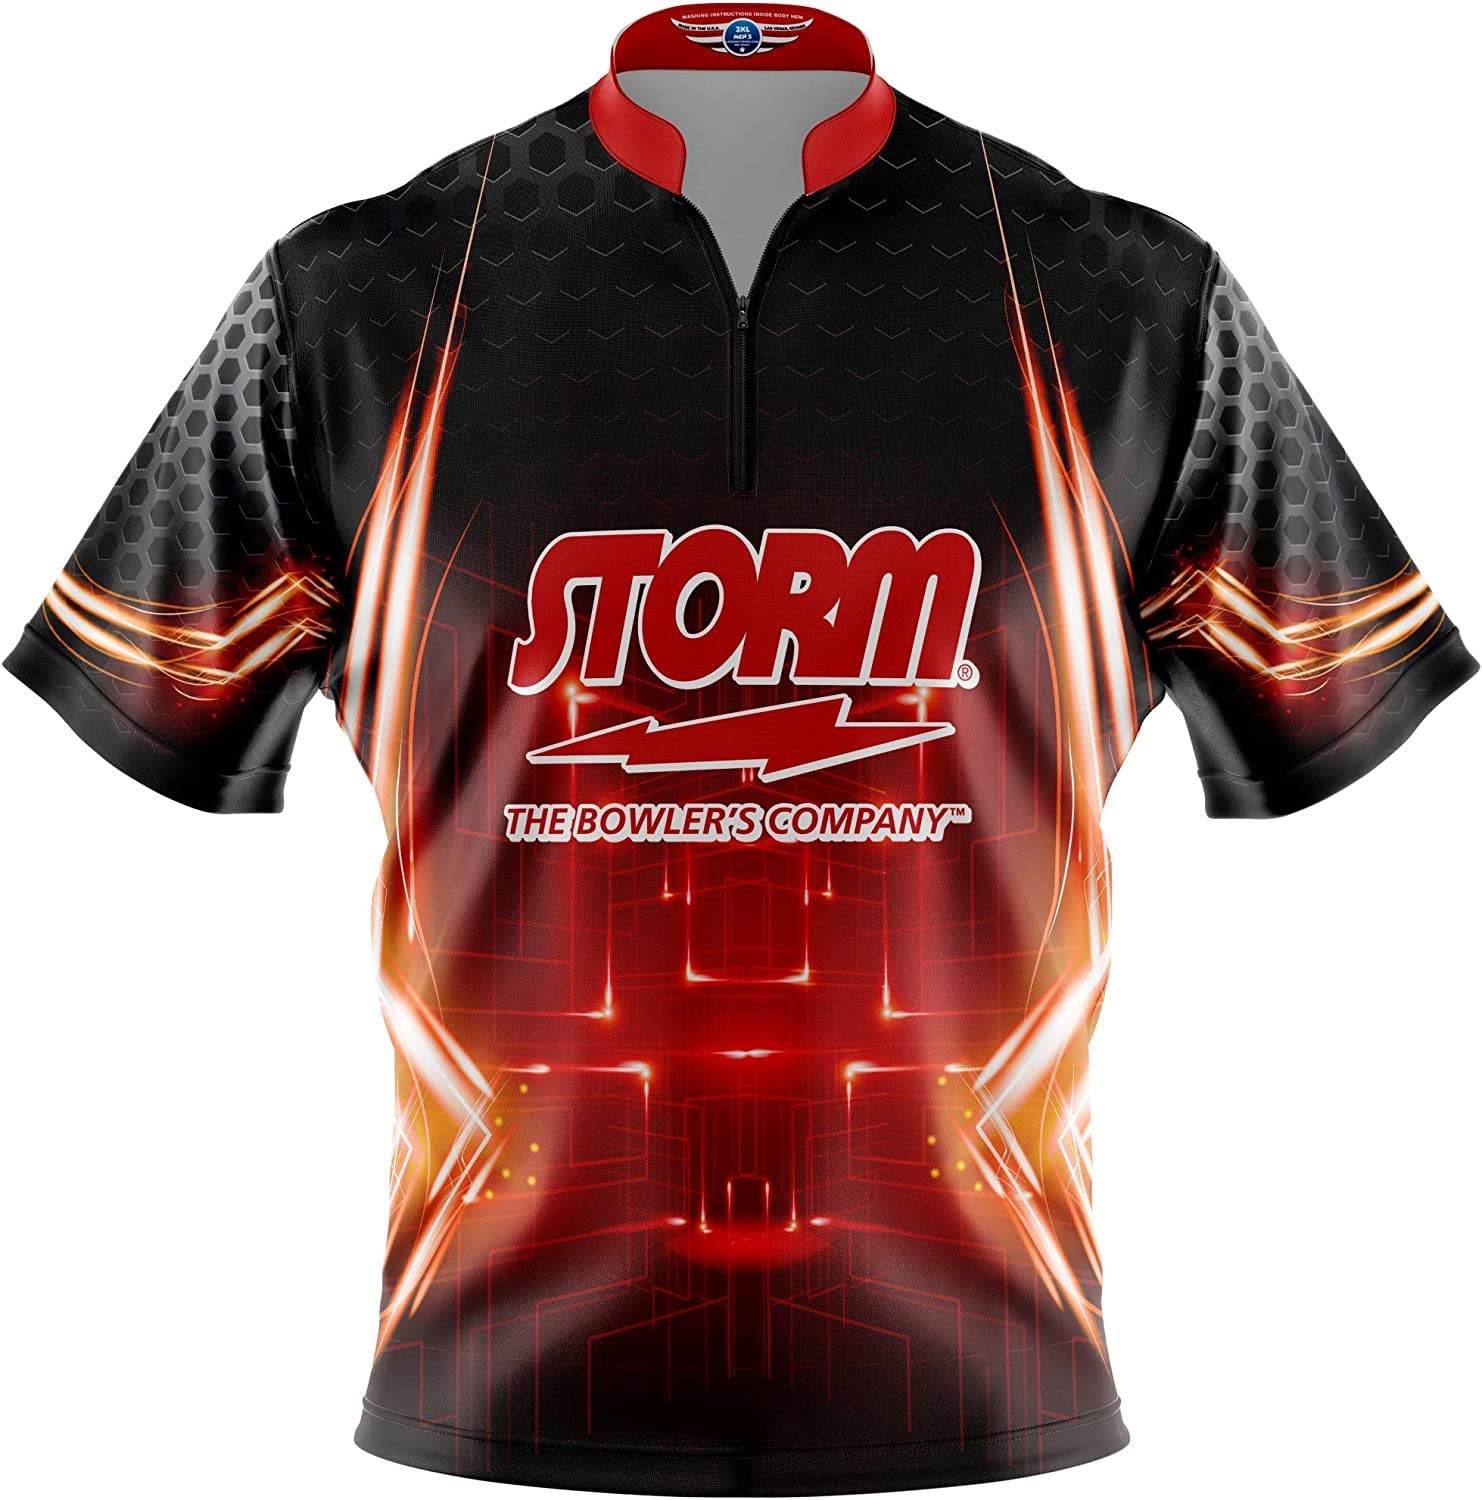 Logo Infusion Bowling Dye-Sublimated Jersey (Sash Collar) - Storm Style 0247ST